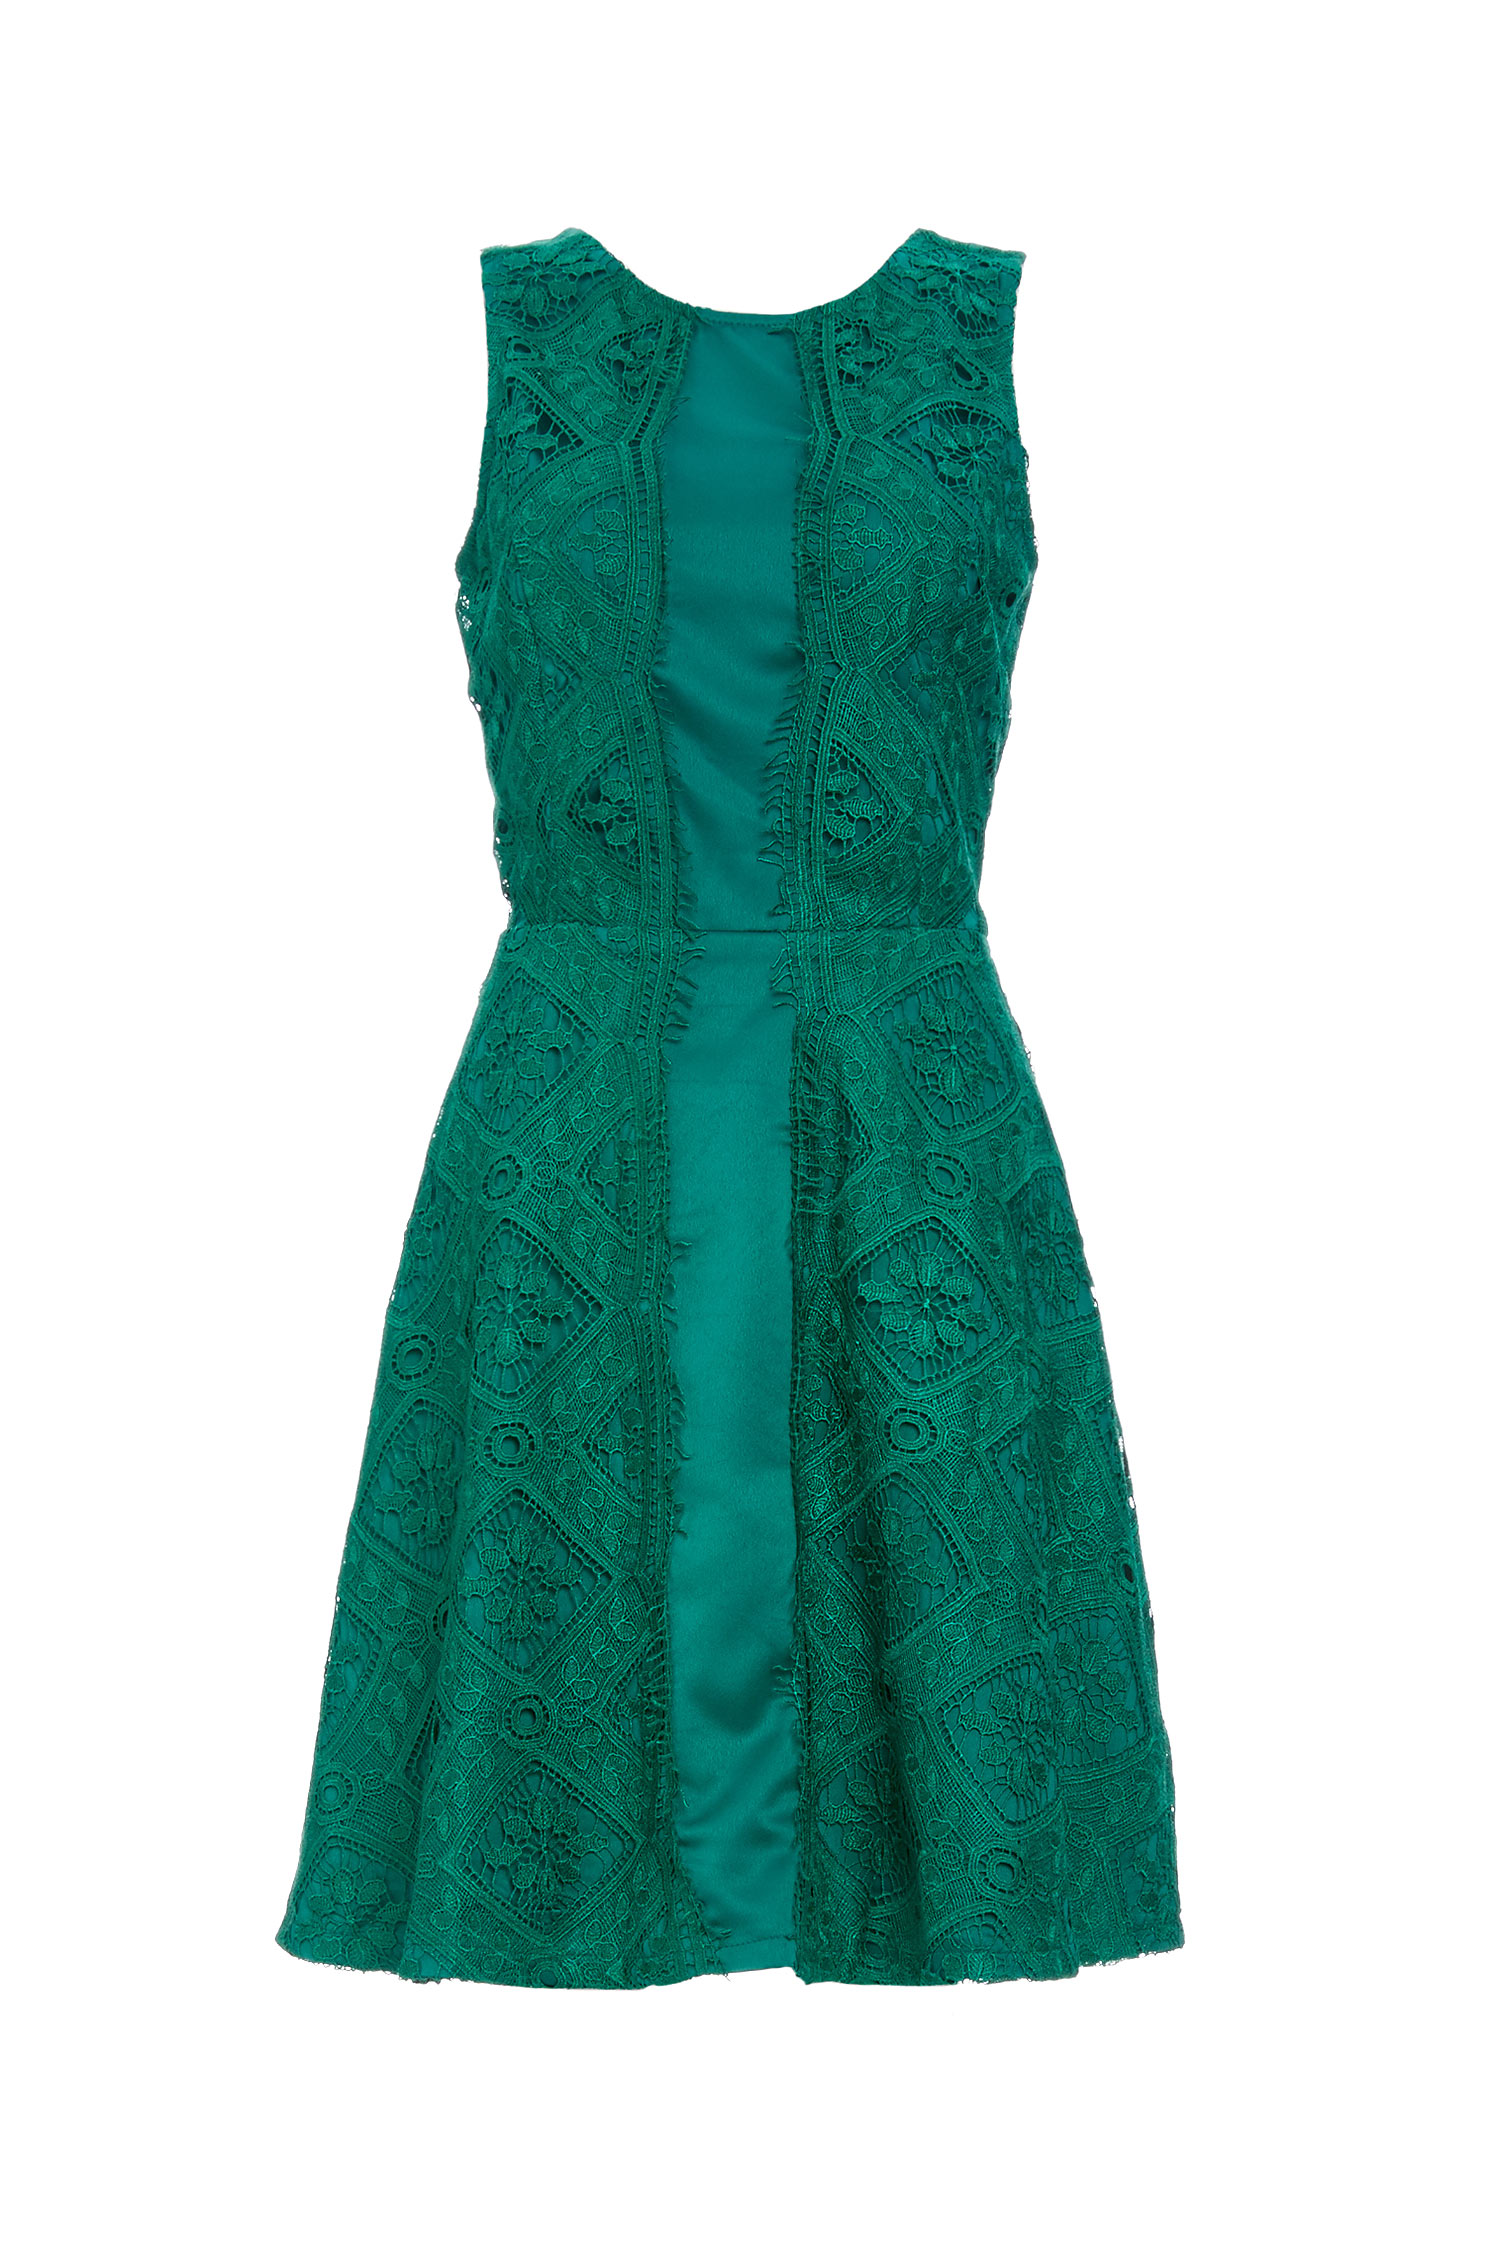 Adelyn Rae Lace Fit And Flare Dress In Green Xs S